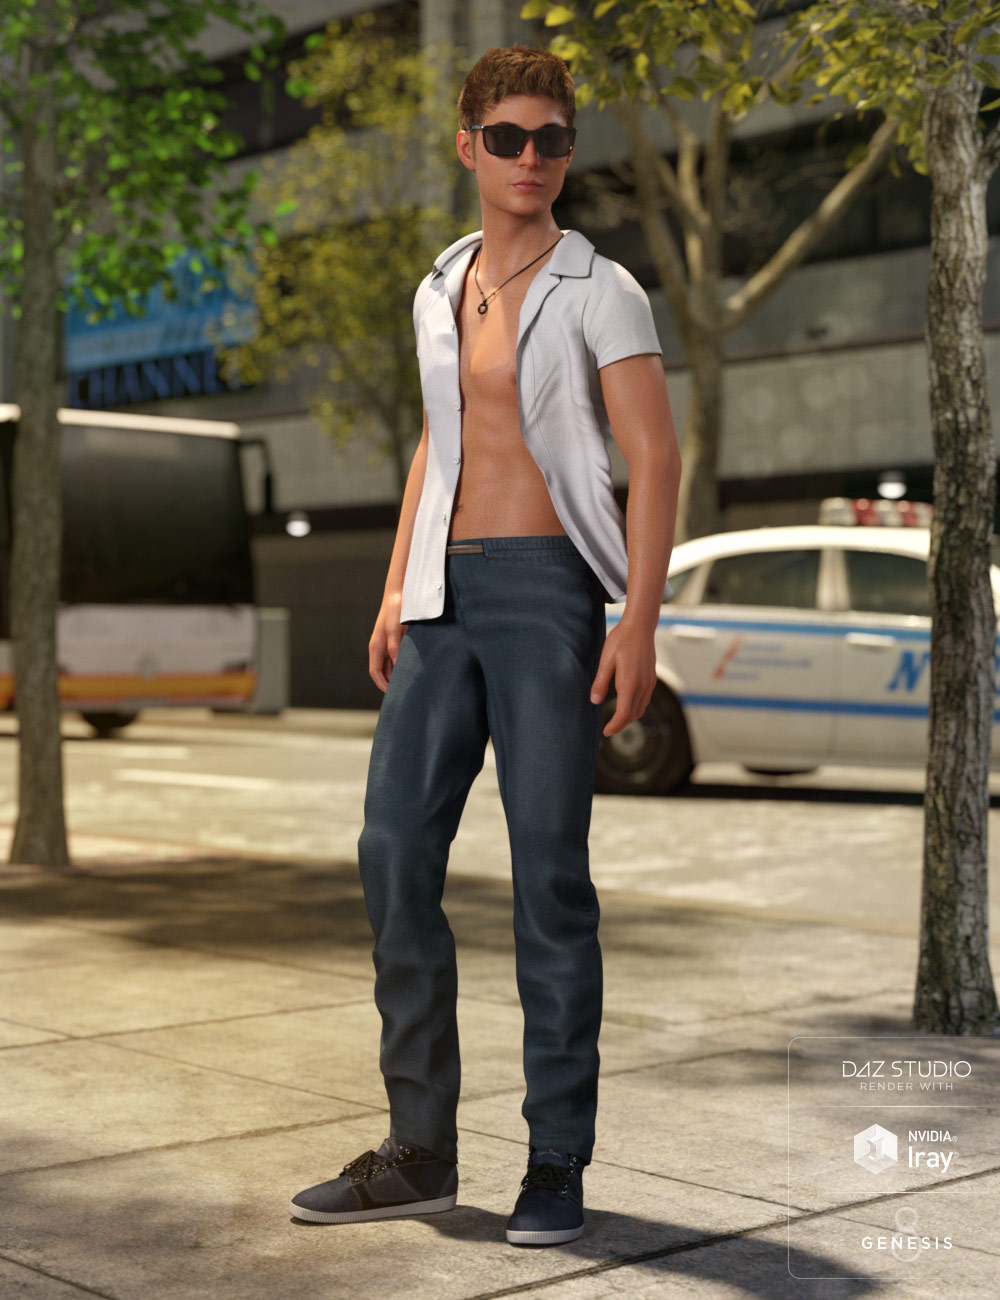 Cool Style Outfit for Genesis 8 Male(s) by: LilflameMada, 3D Models by Daz 3D